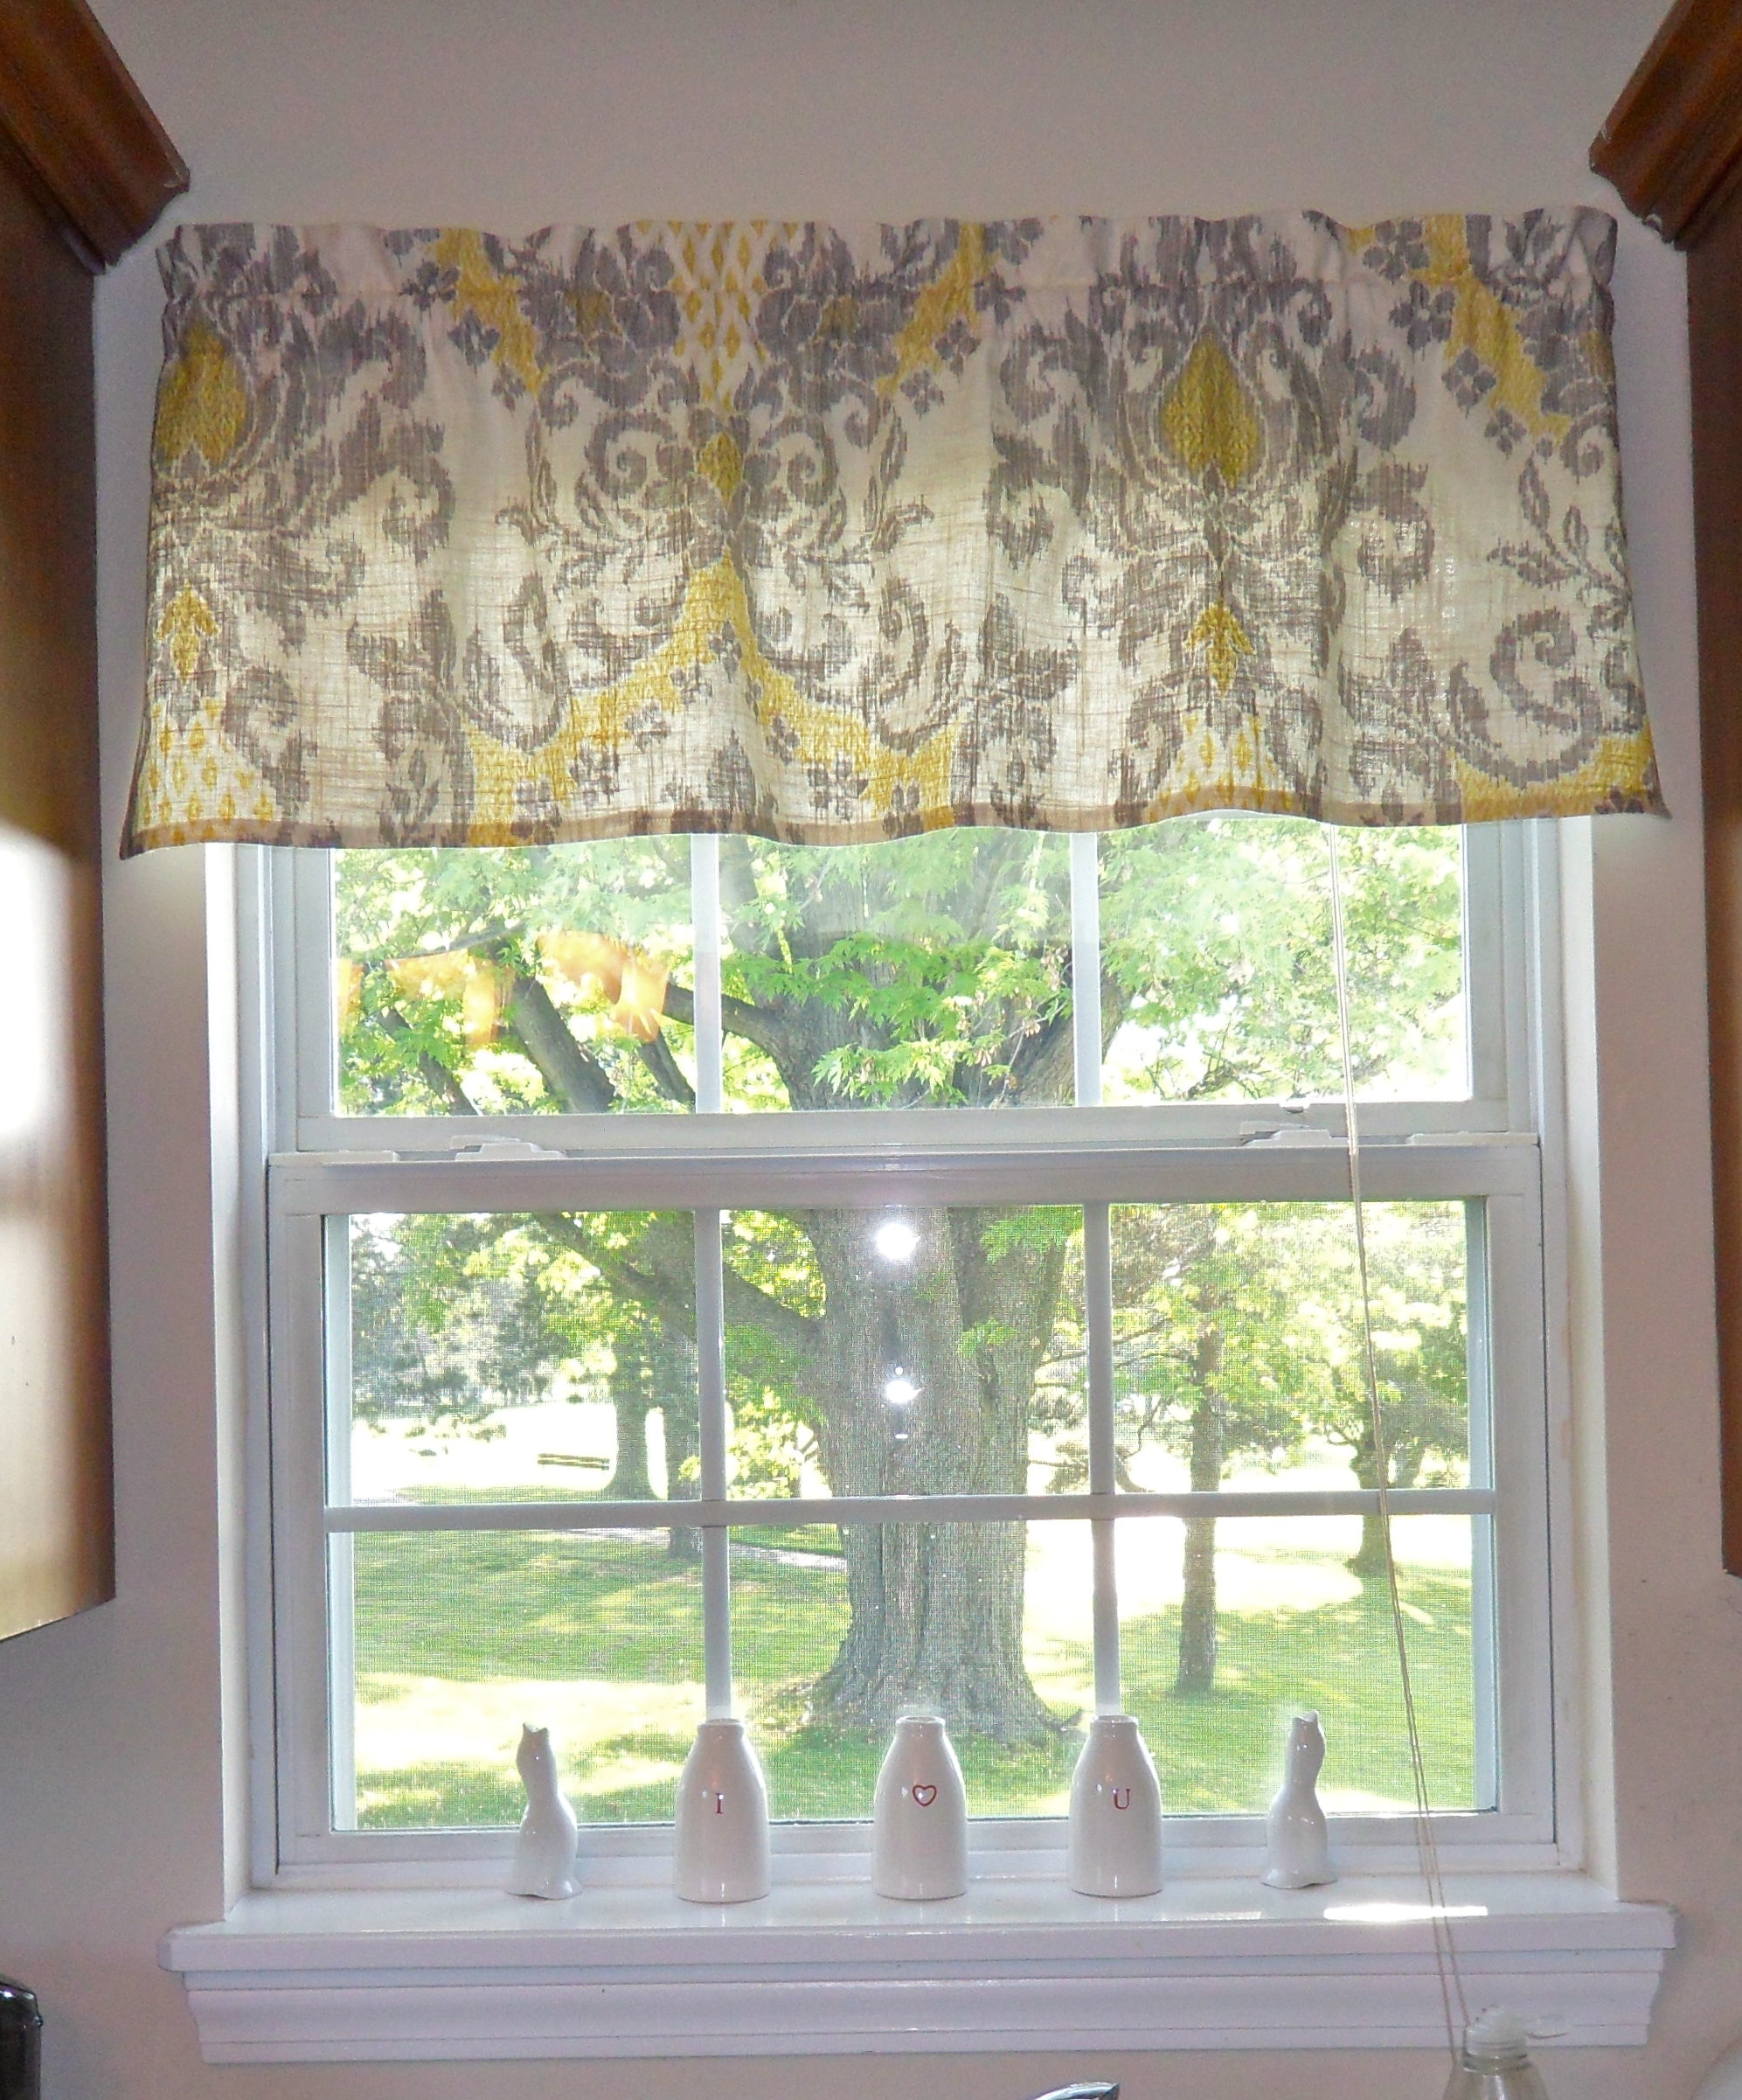 one window hei sharpen the nursery decorative op prd product valance isabel jsp aqua wid big